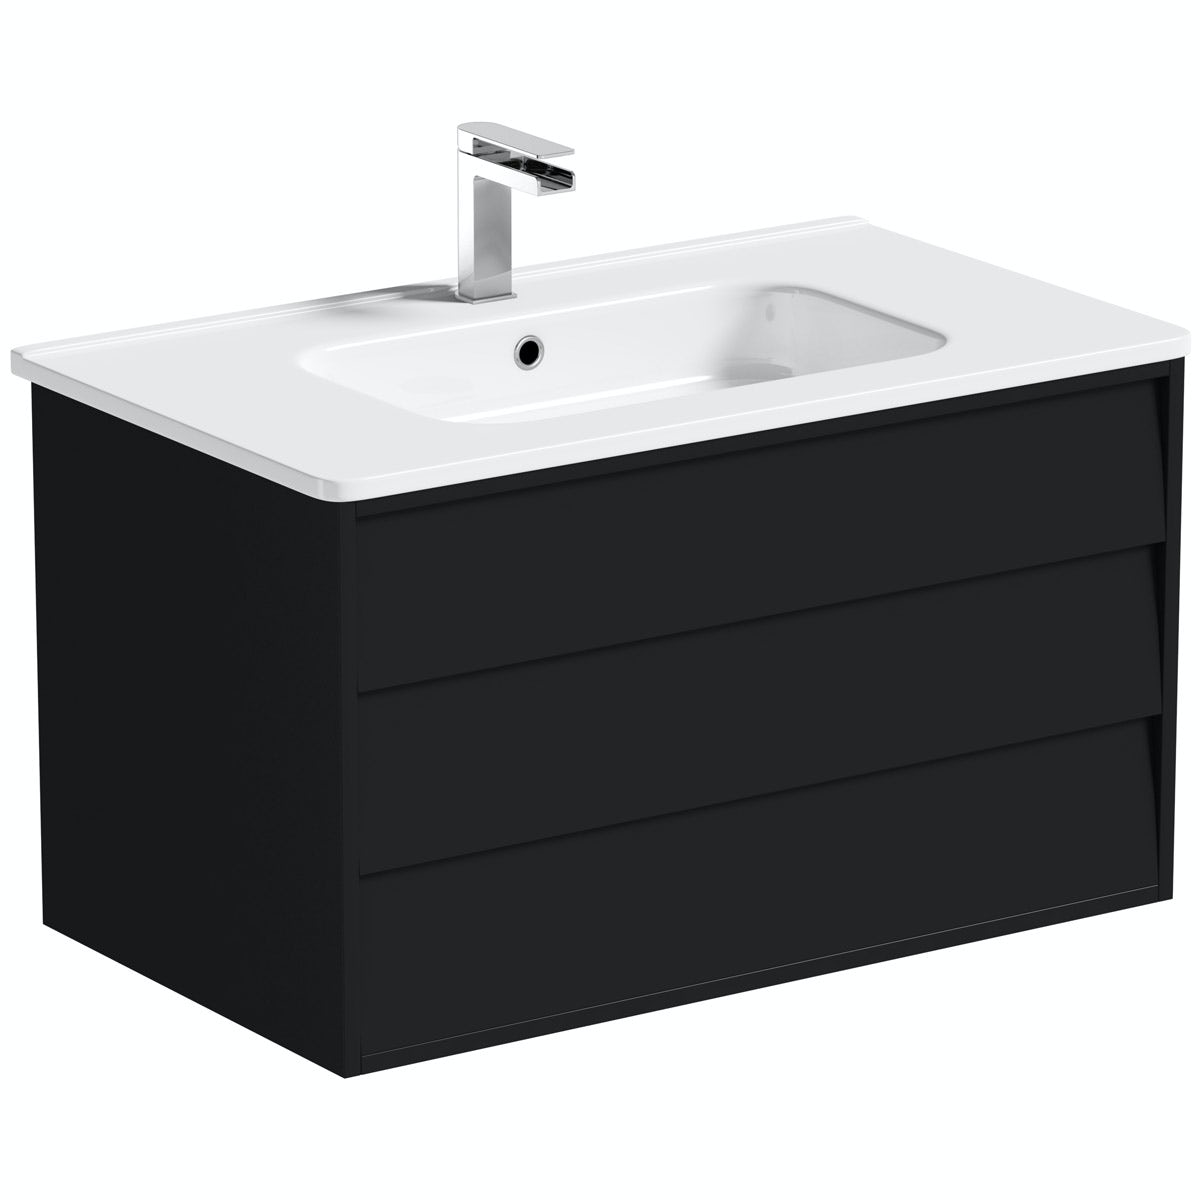 Mode Cooper anthracite wall hung vanity unit and basin 800mm